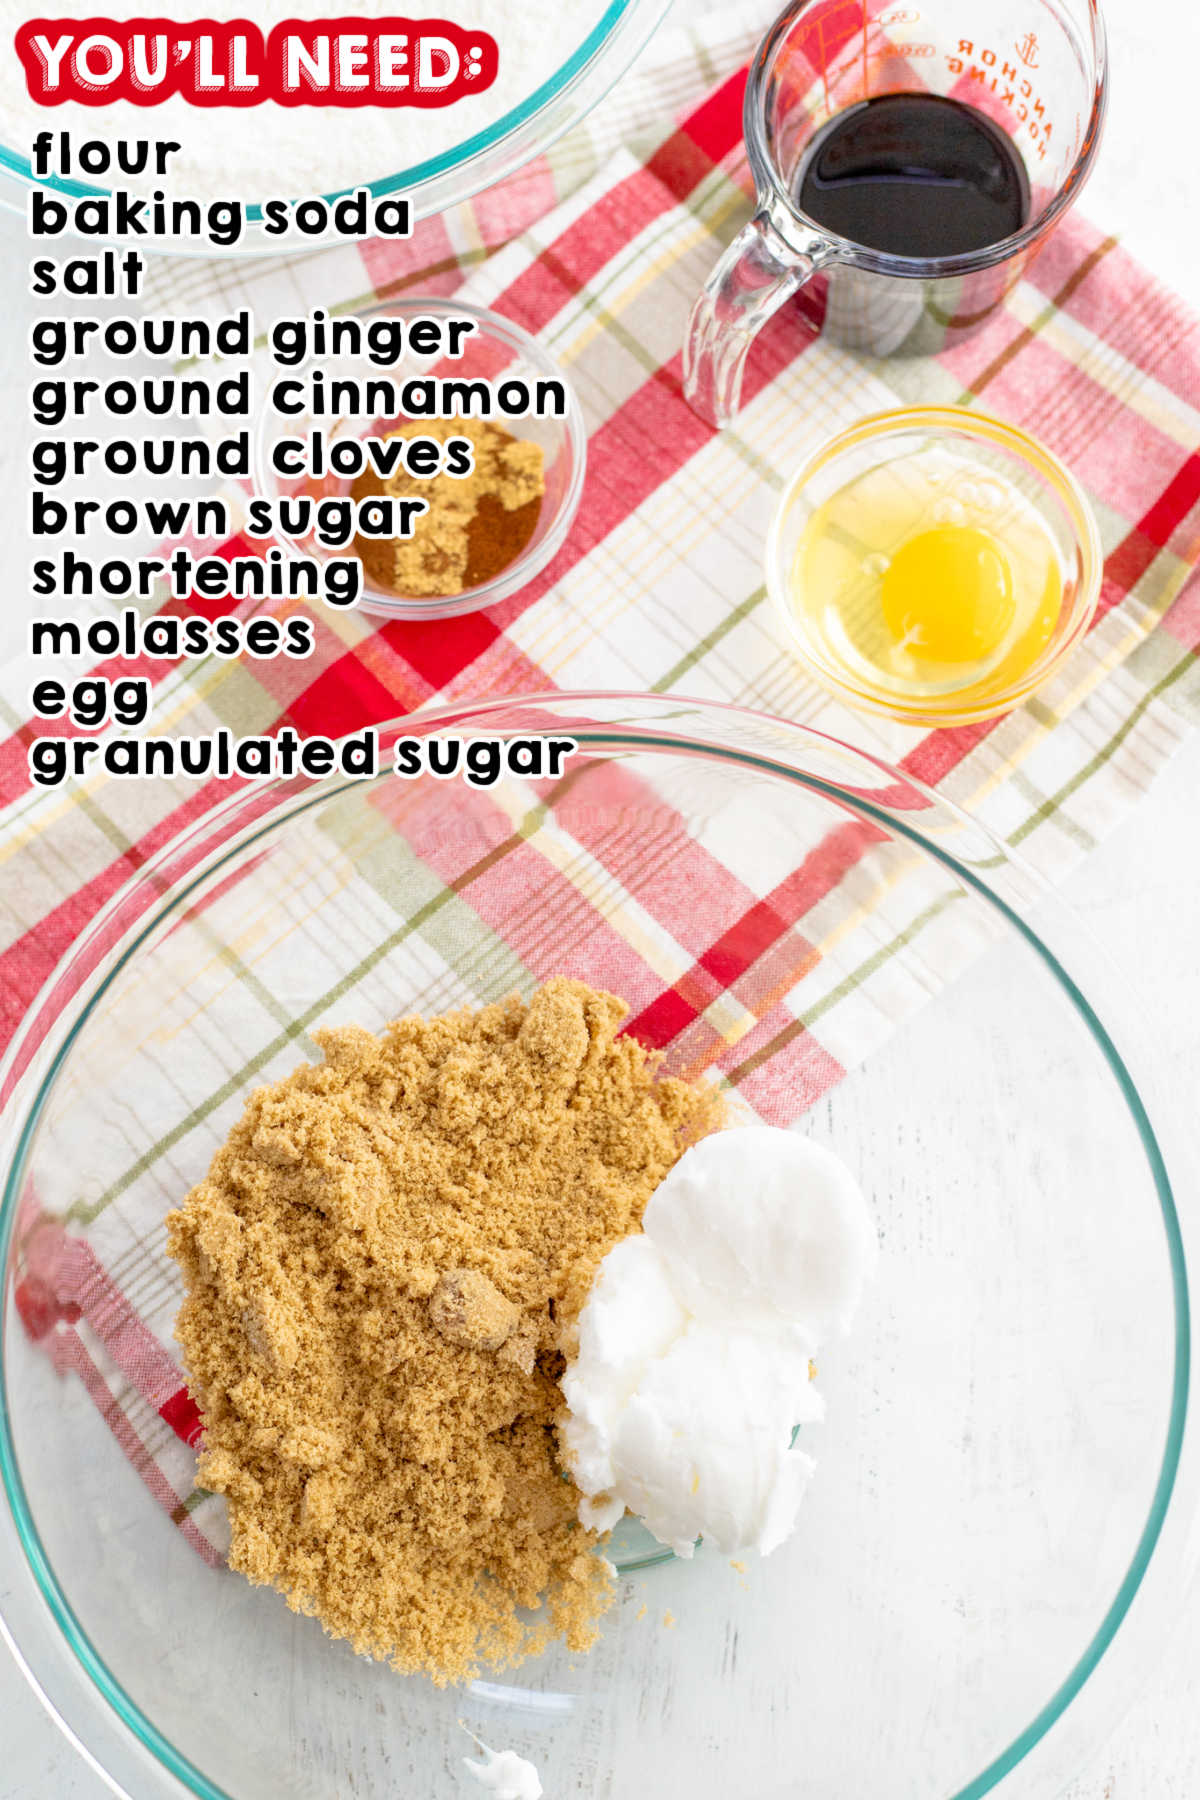 All of the ingredients needed to make this gingersnap cookie recipe.